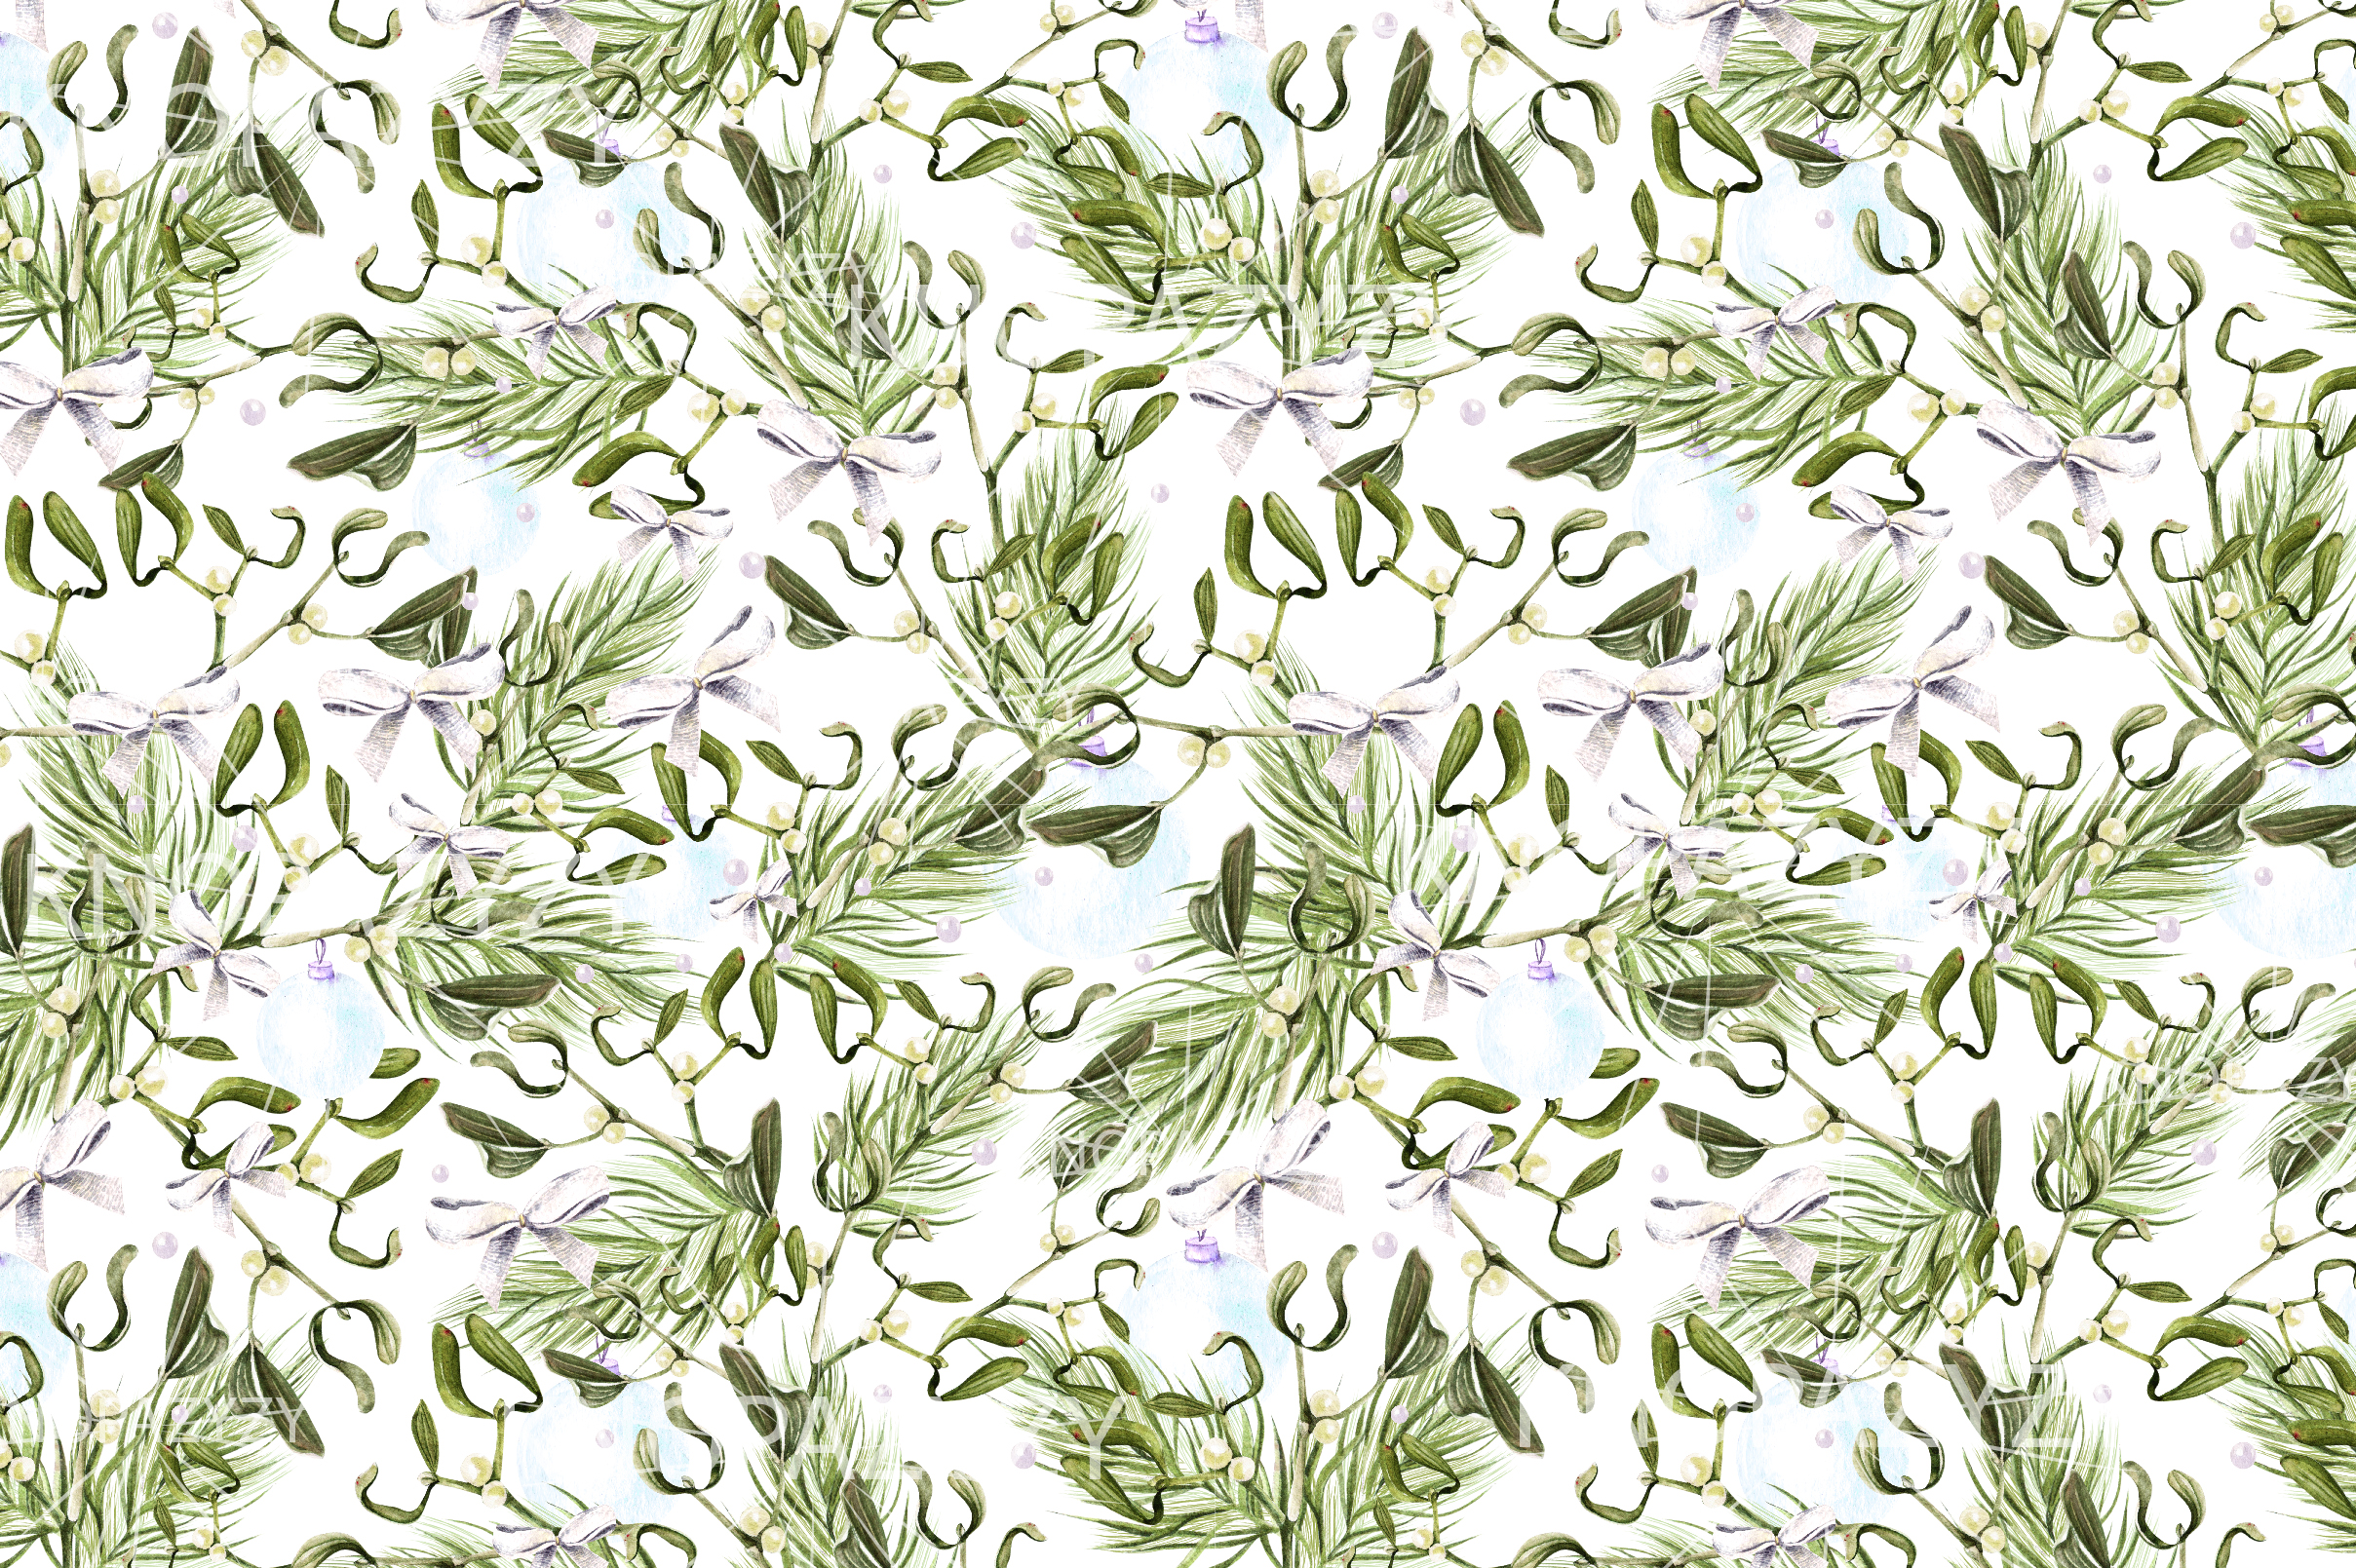 Hand Drawn Watercolor Christmas 13 Patterns example image 2